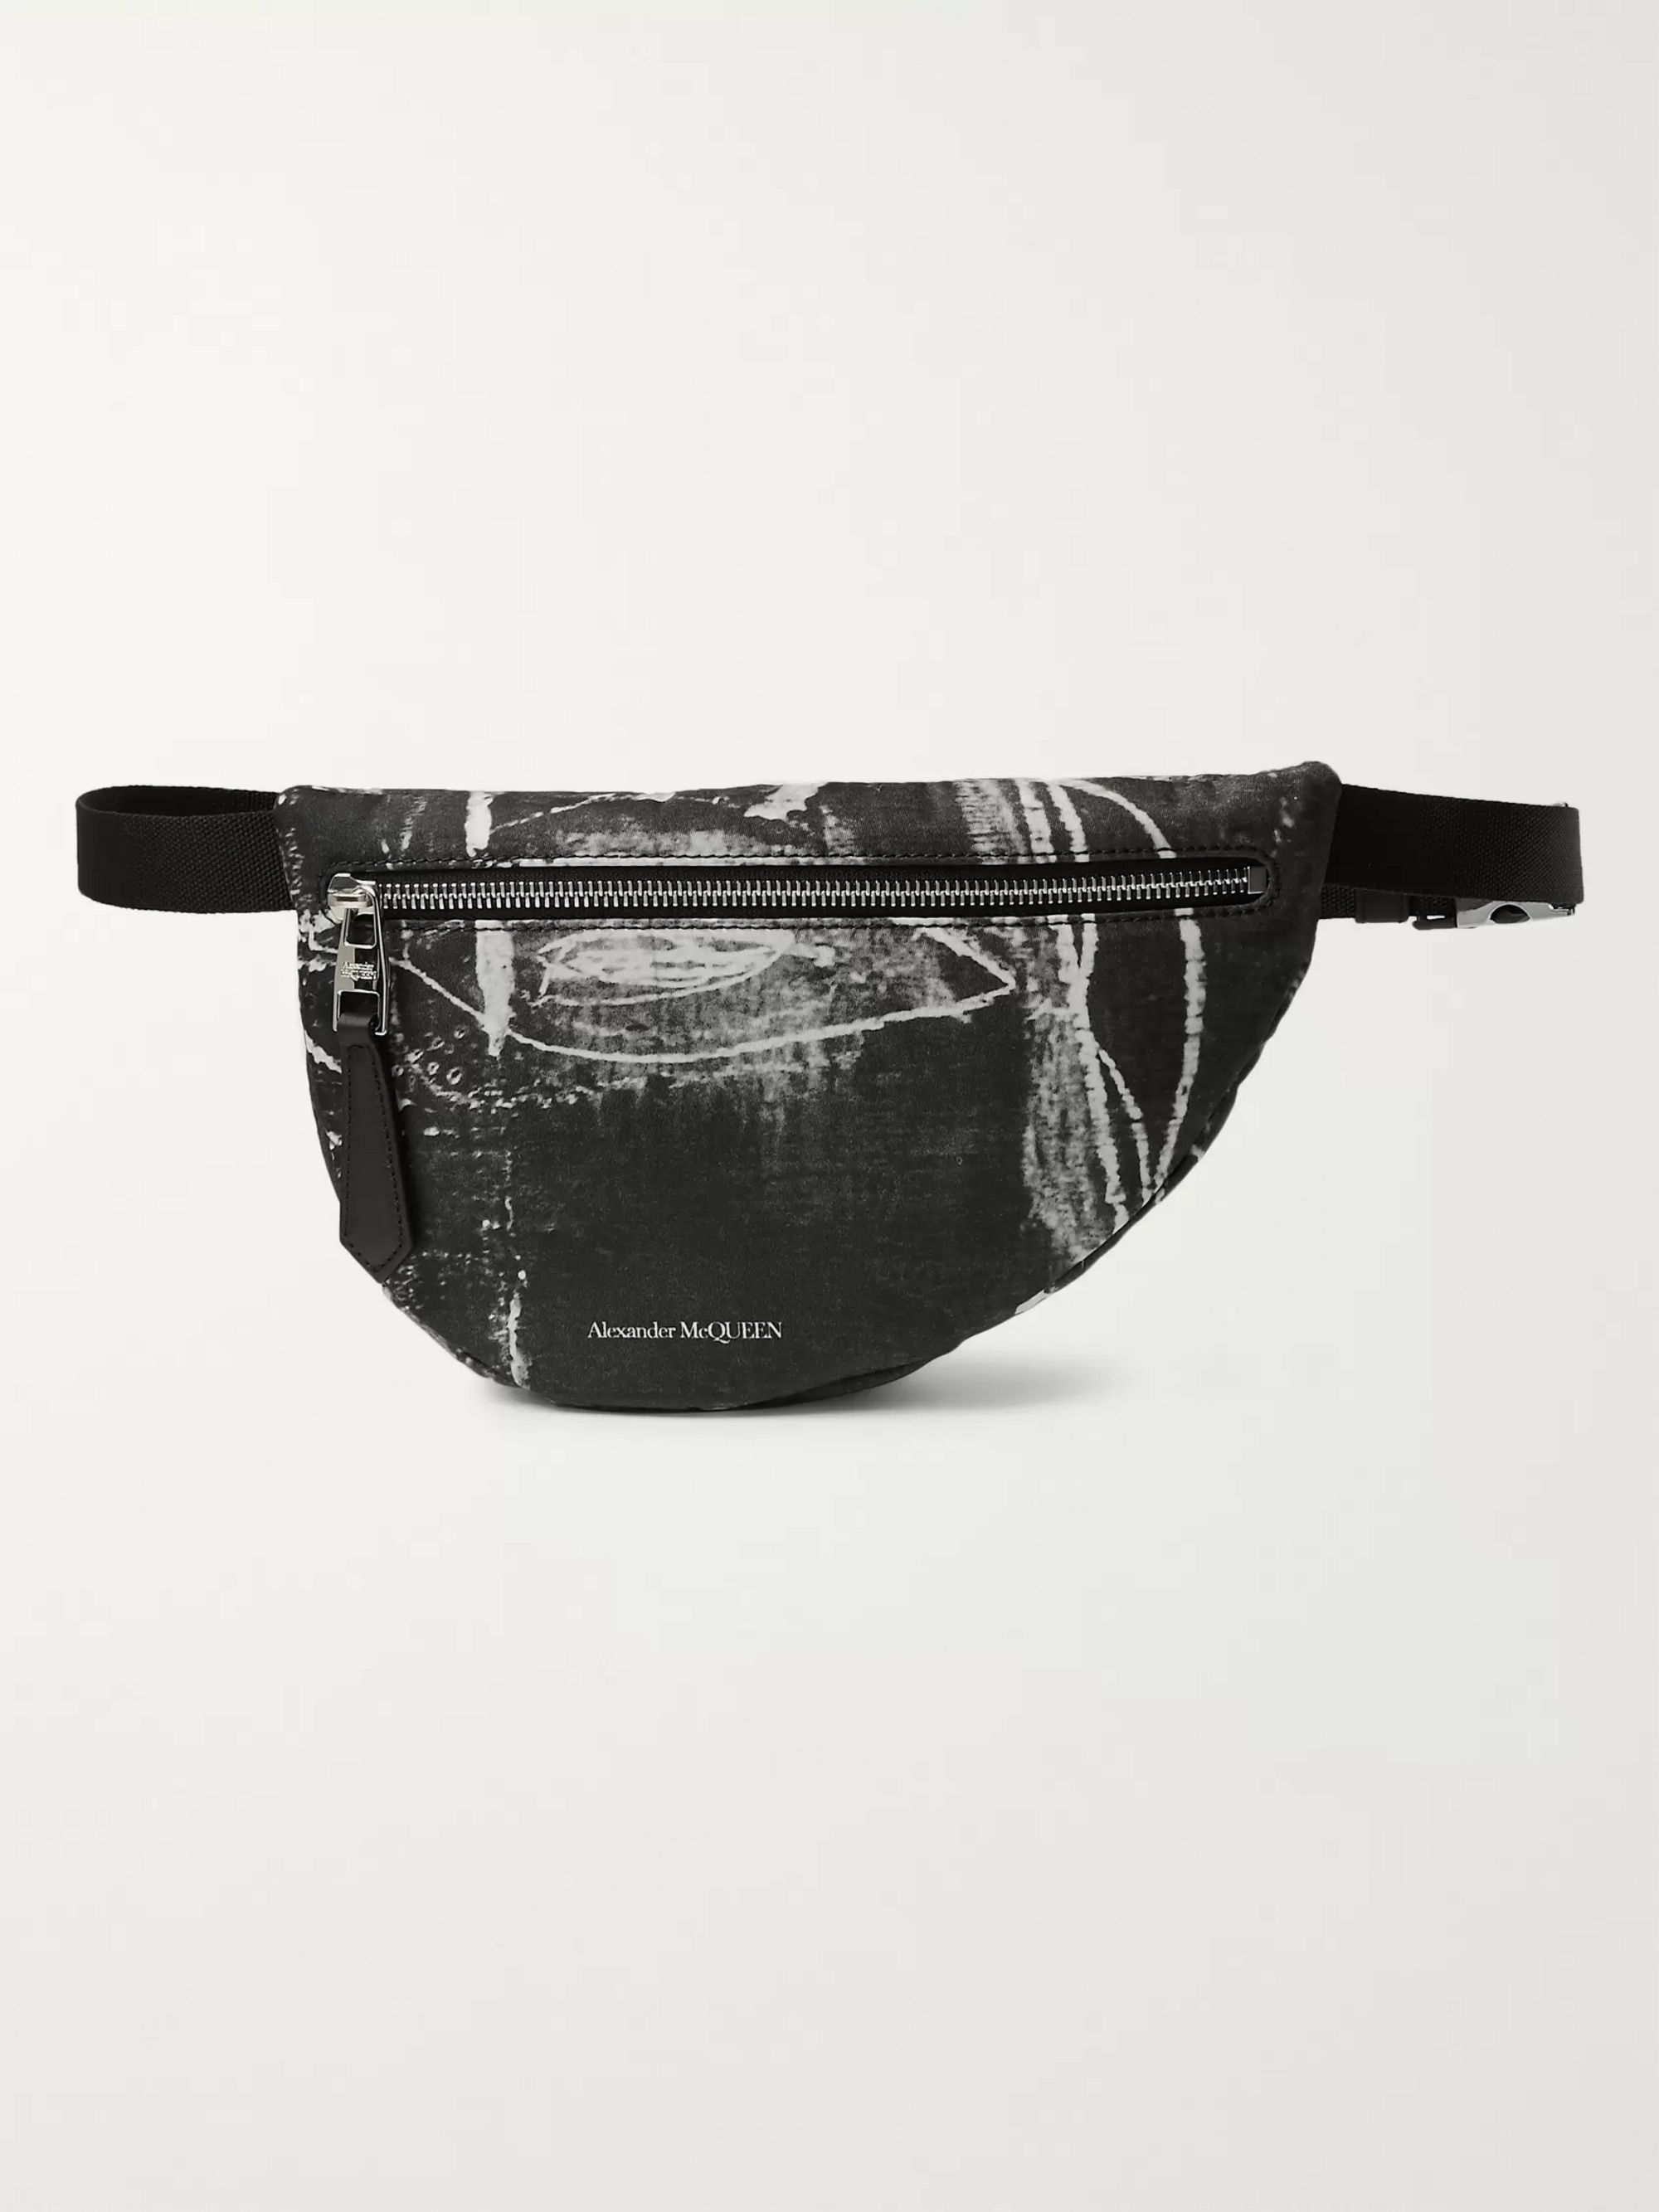 Alexander McQueen Printed Nylon Belt Bag